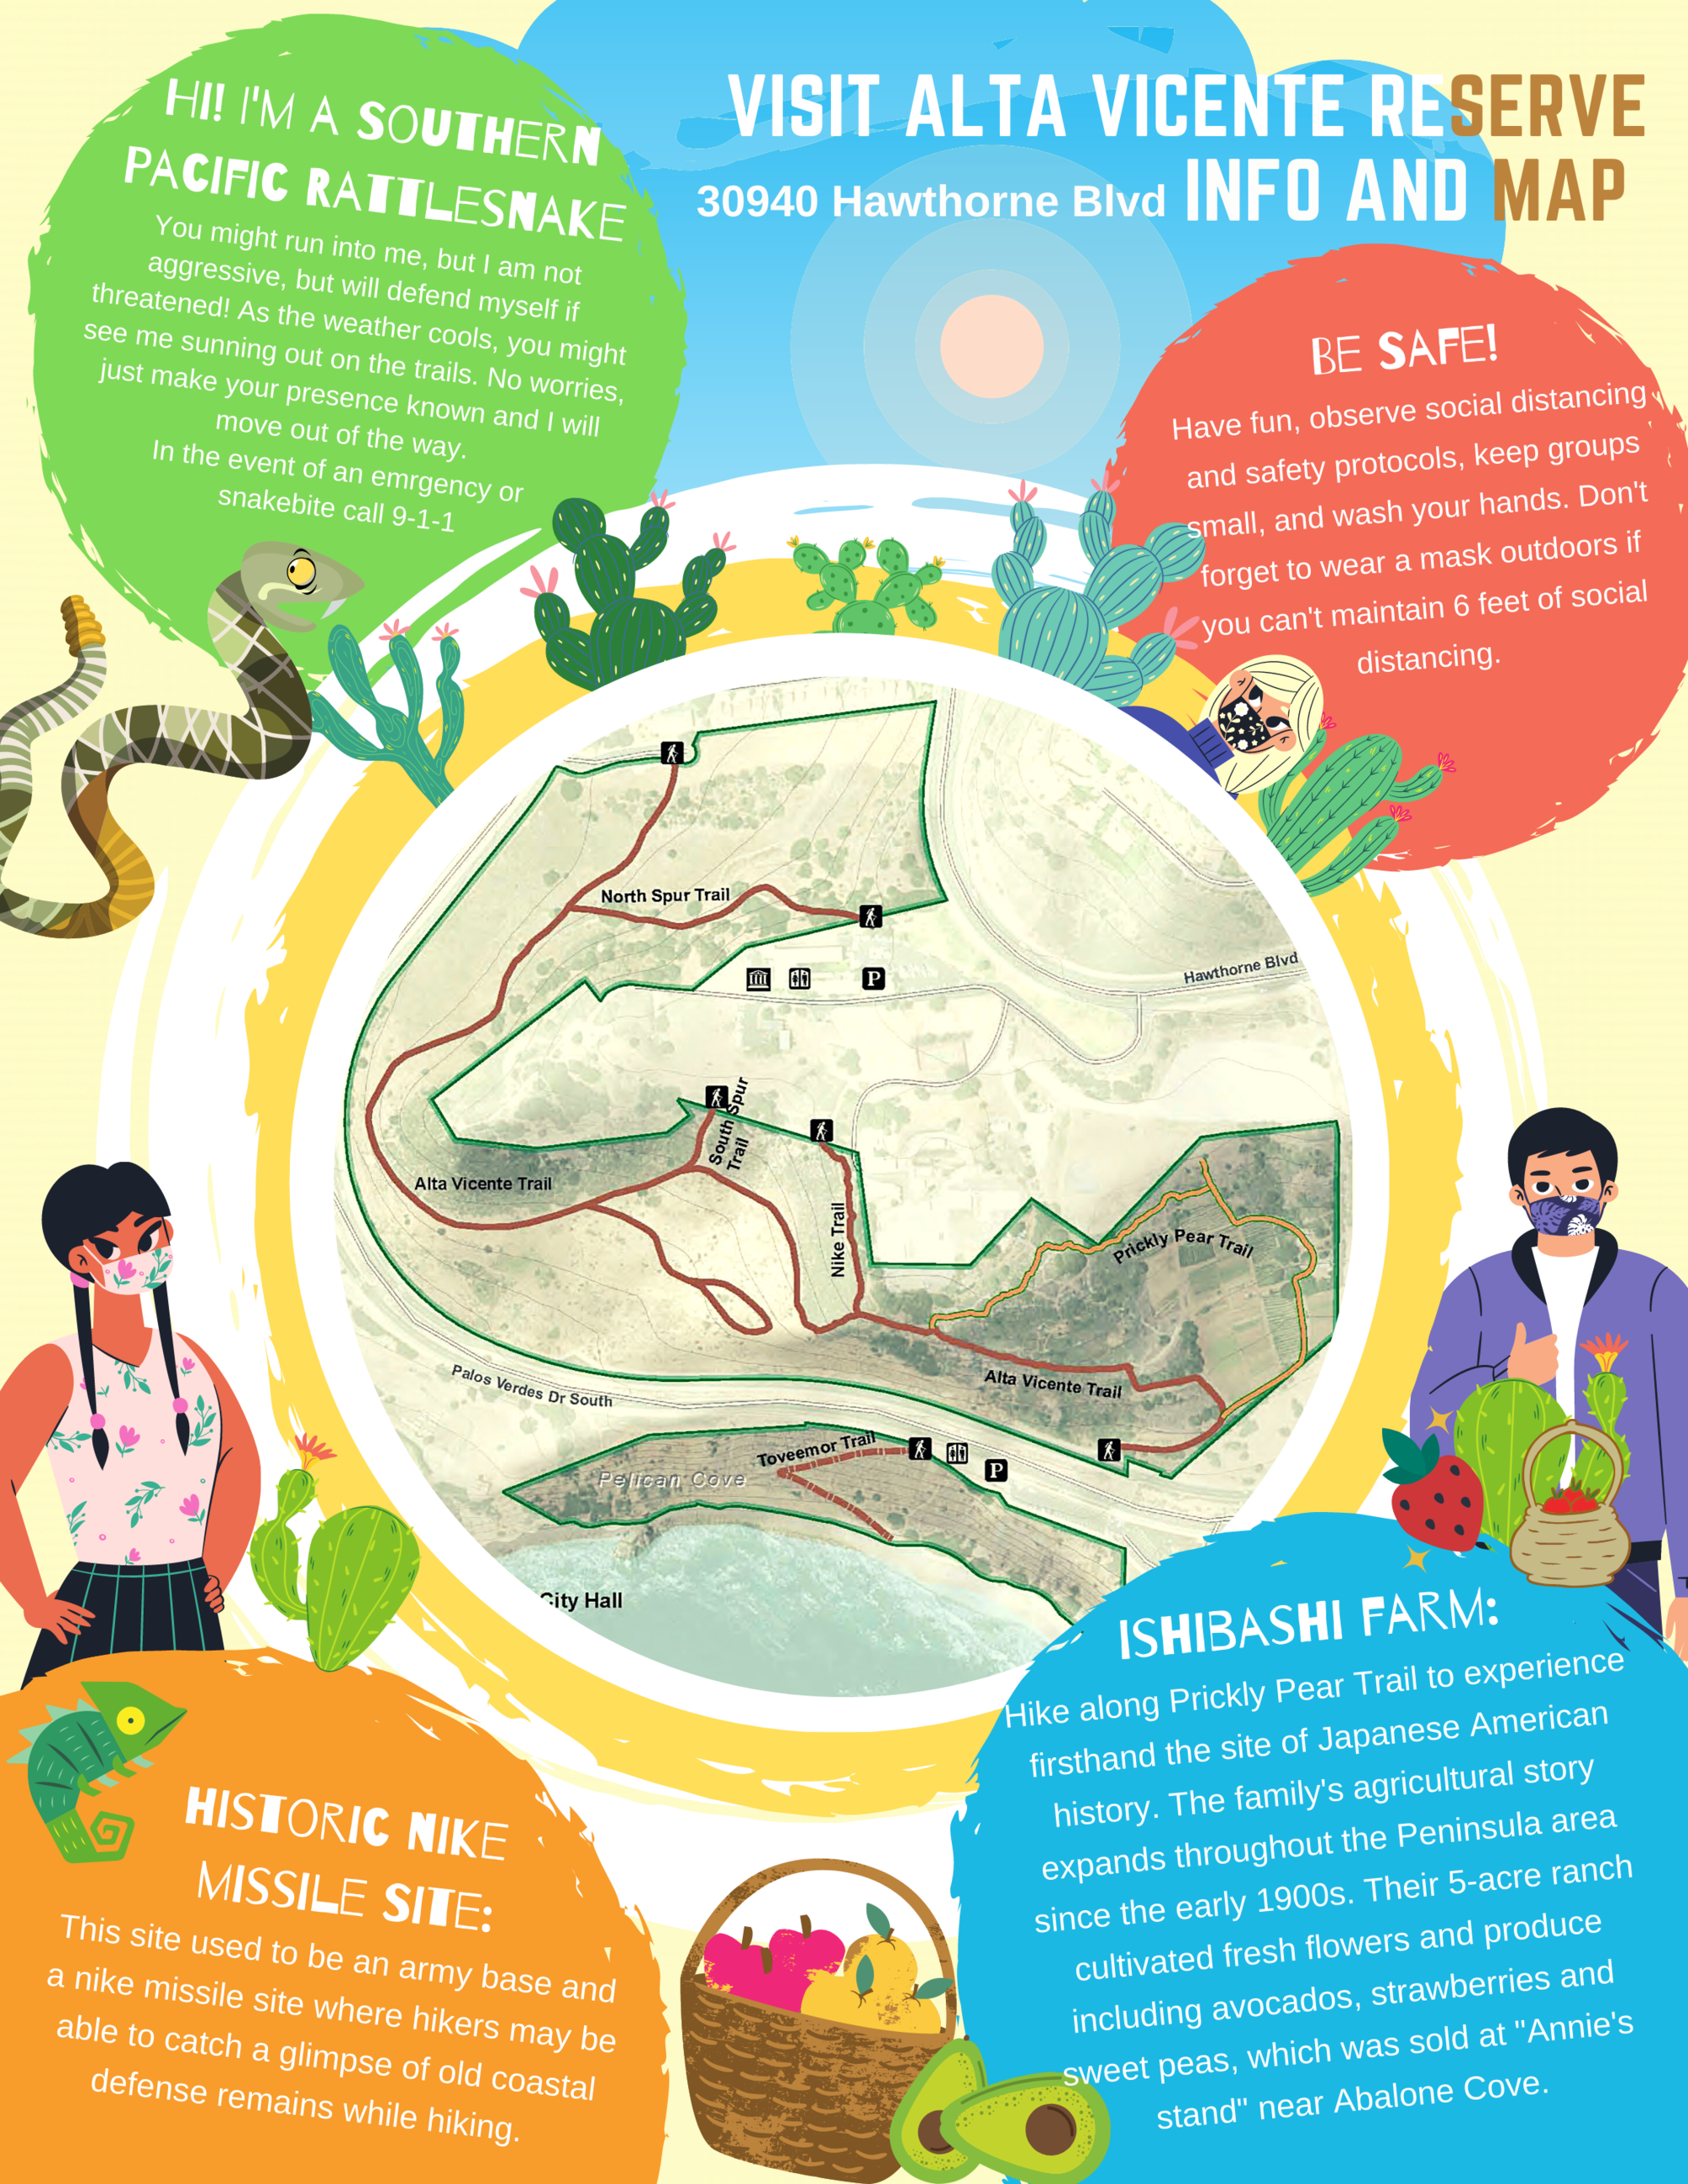 Alta vicente reserve map and facts